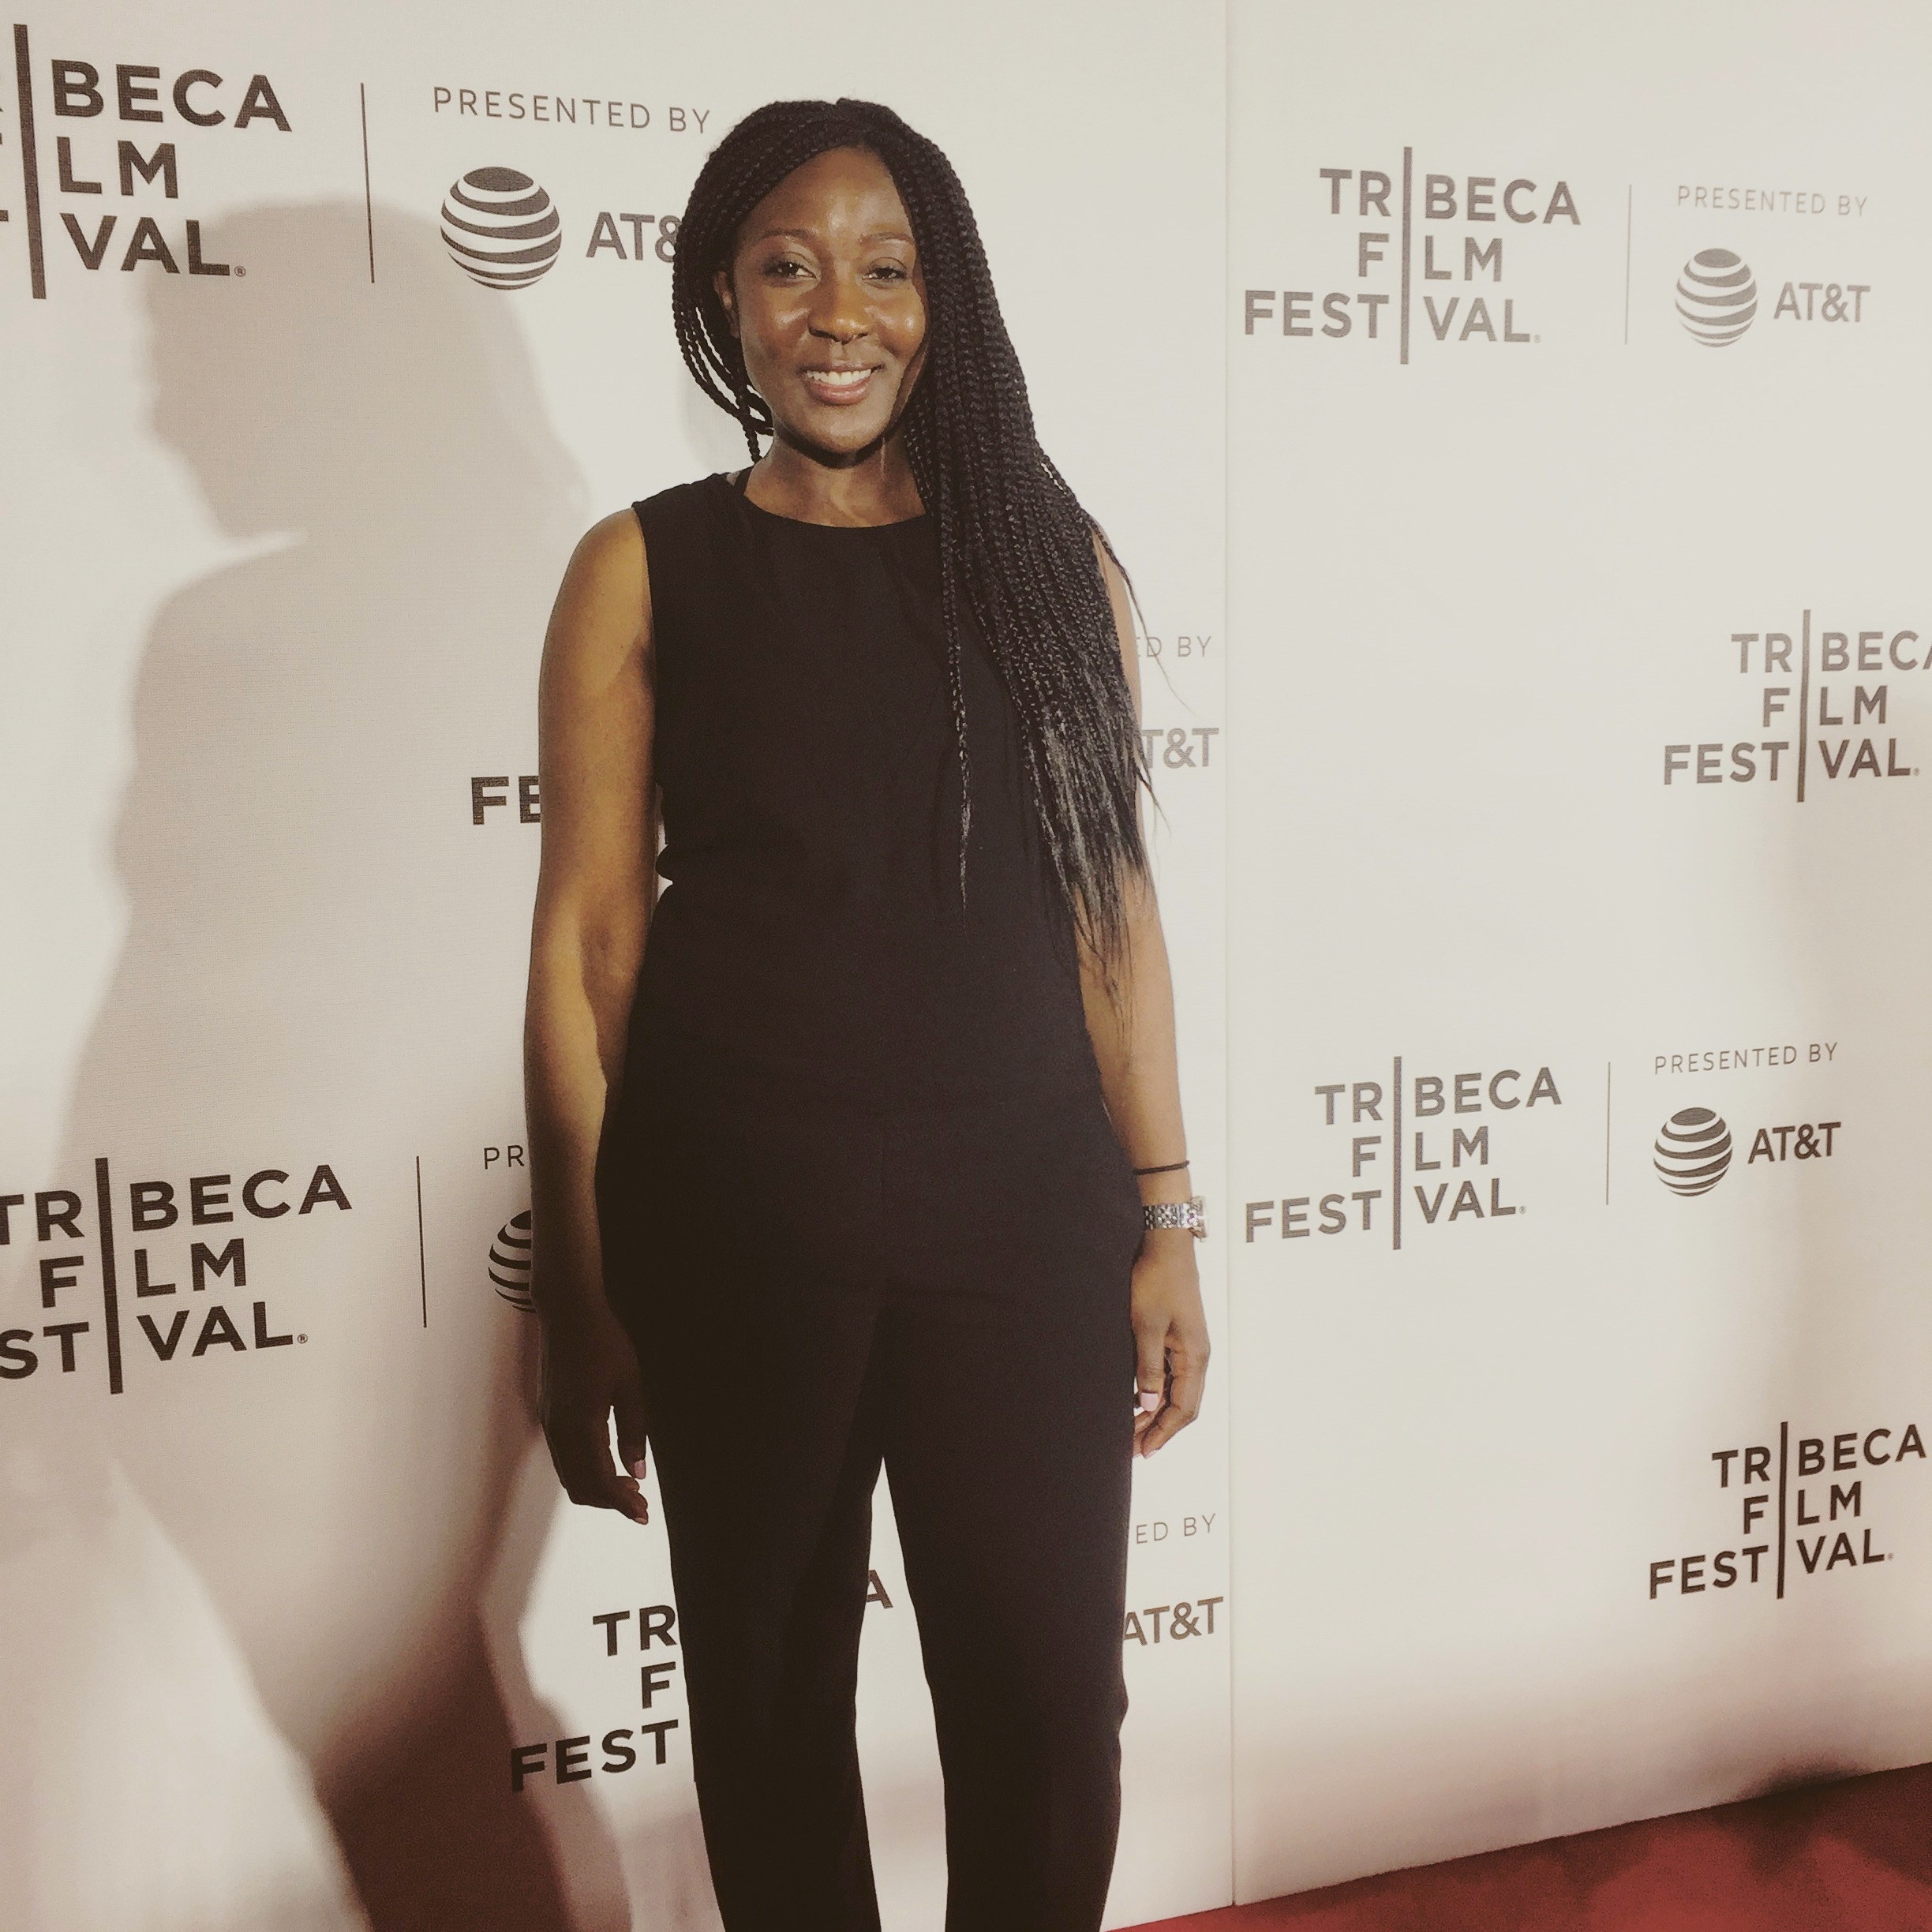 On the red carpet at the premiere of Phone Calls at Tribeca N.O.W.